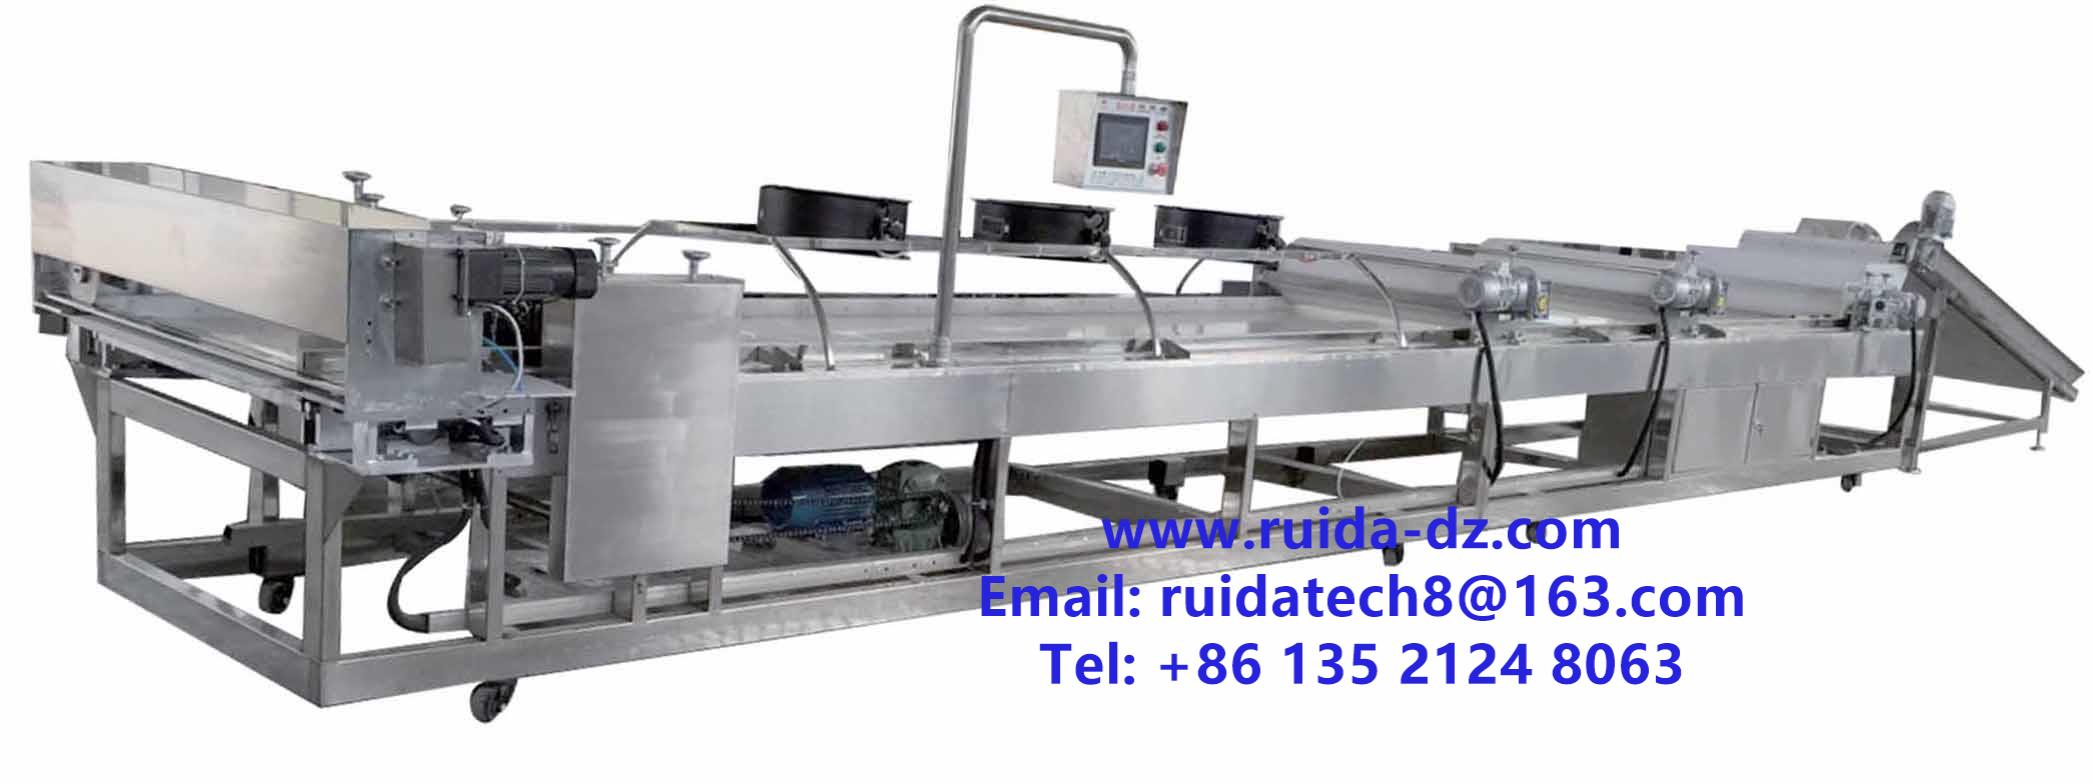 Automatic forming cutting machine, Automatic forming machine & Cutting Machine